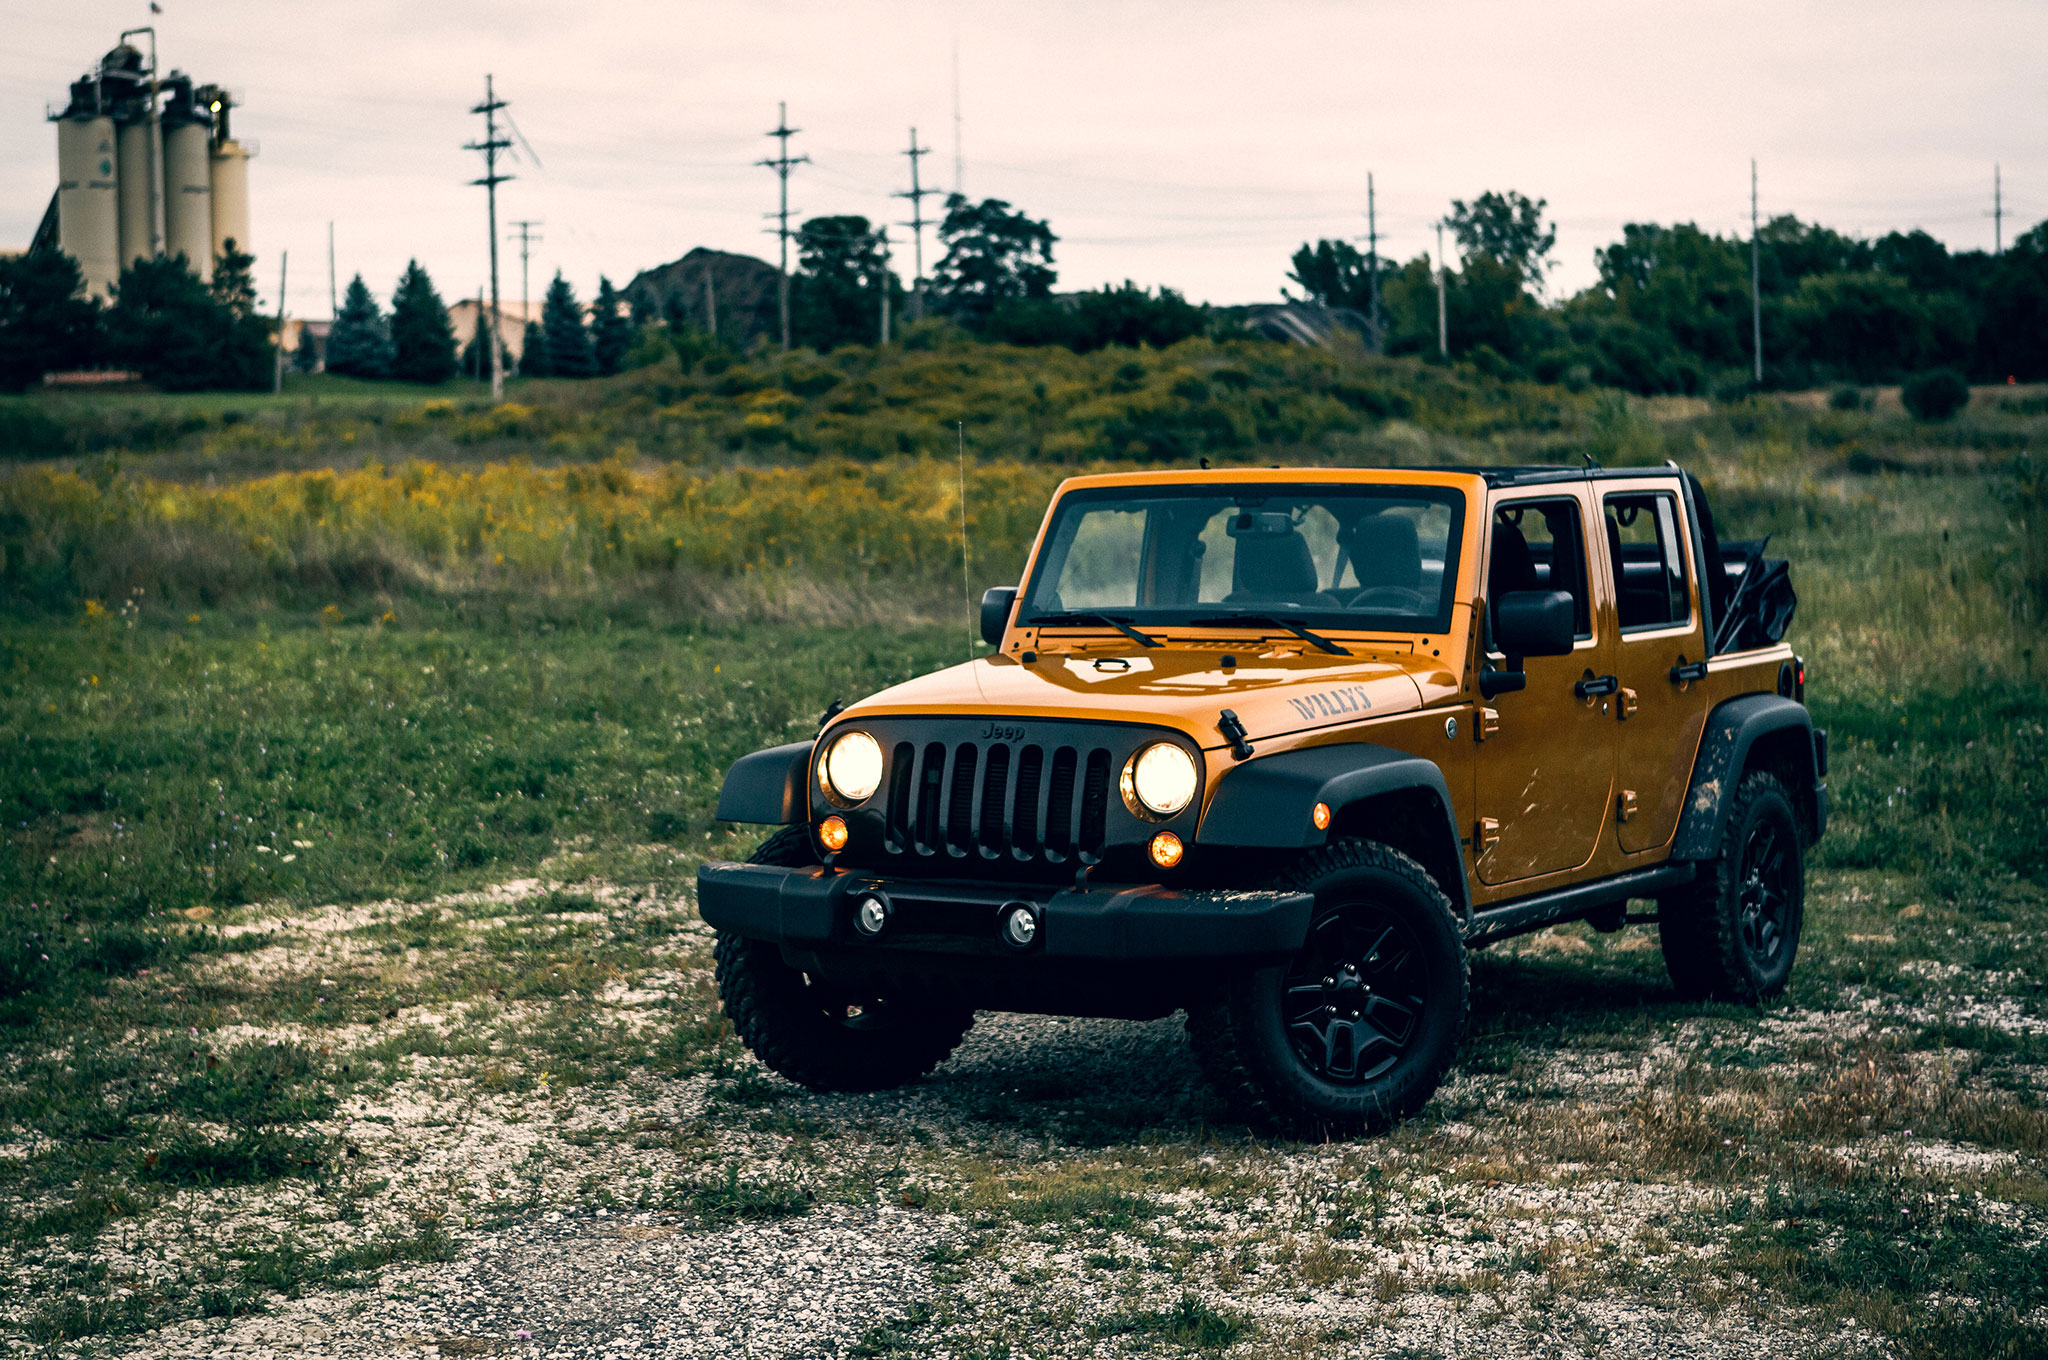 2014 Jeep Wrangler Unlimited Willys Wheeler Front Three Quarter View 2